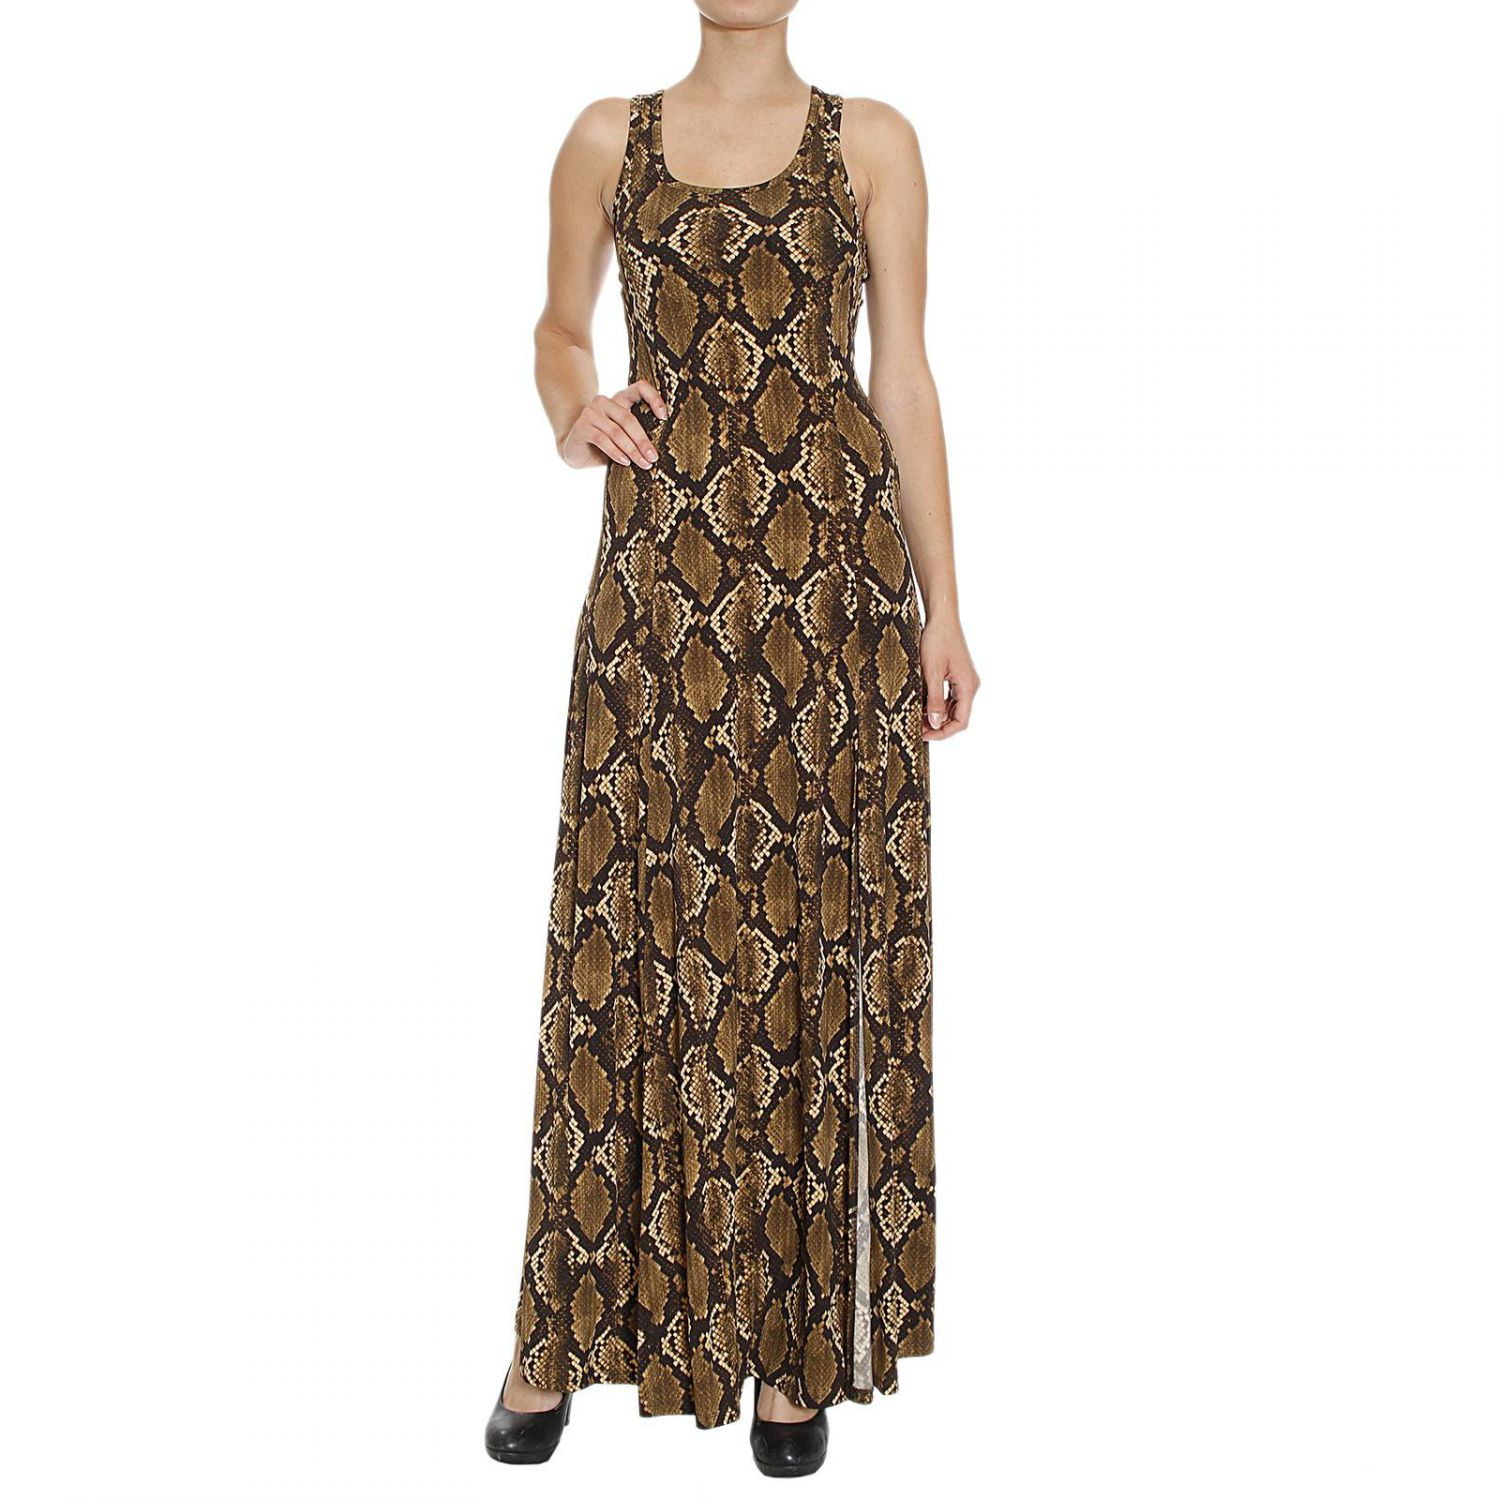 Fantastic Michael Kors Dresses For Women | Michael Kors | Pinterest